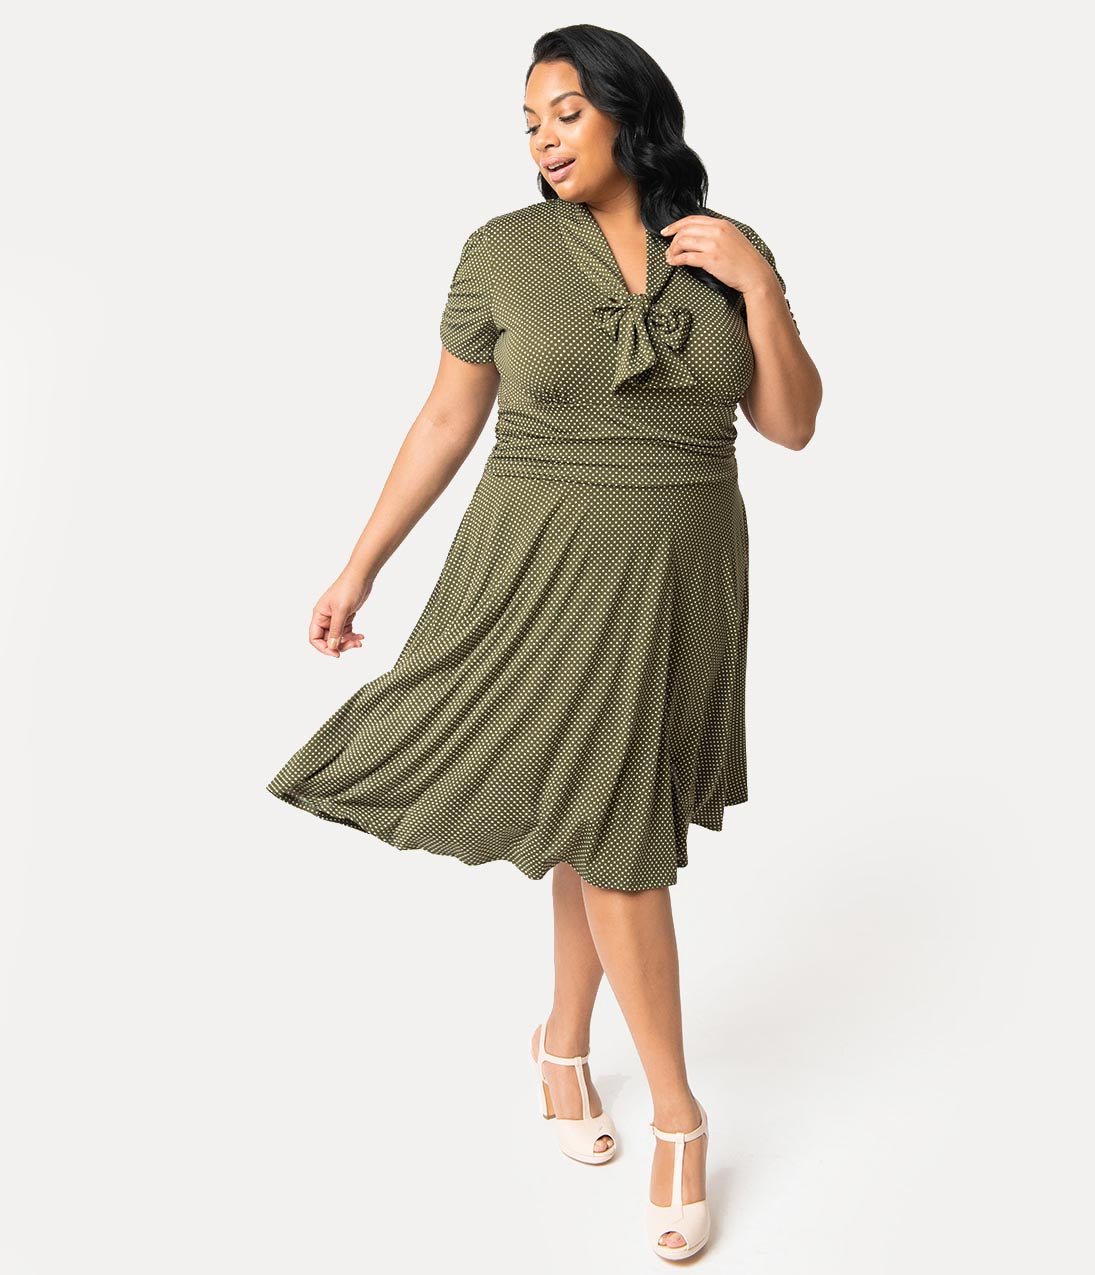 1940s Dresses | 40s Dress, Swing Dress Folter Plus Size 1940S Style Olive Green  White Pin Dot Neck Tie Swing Dress $72.00 AT vintagedancer.com